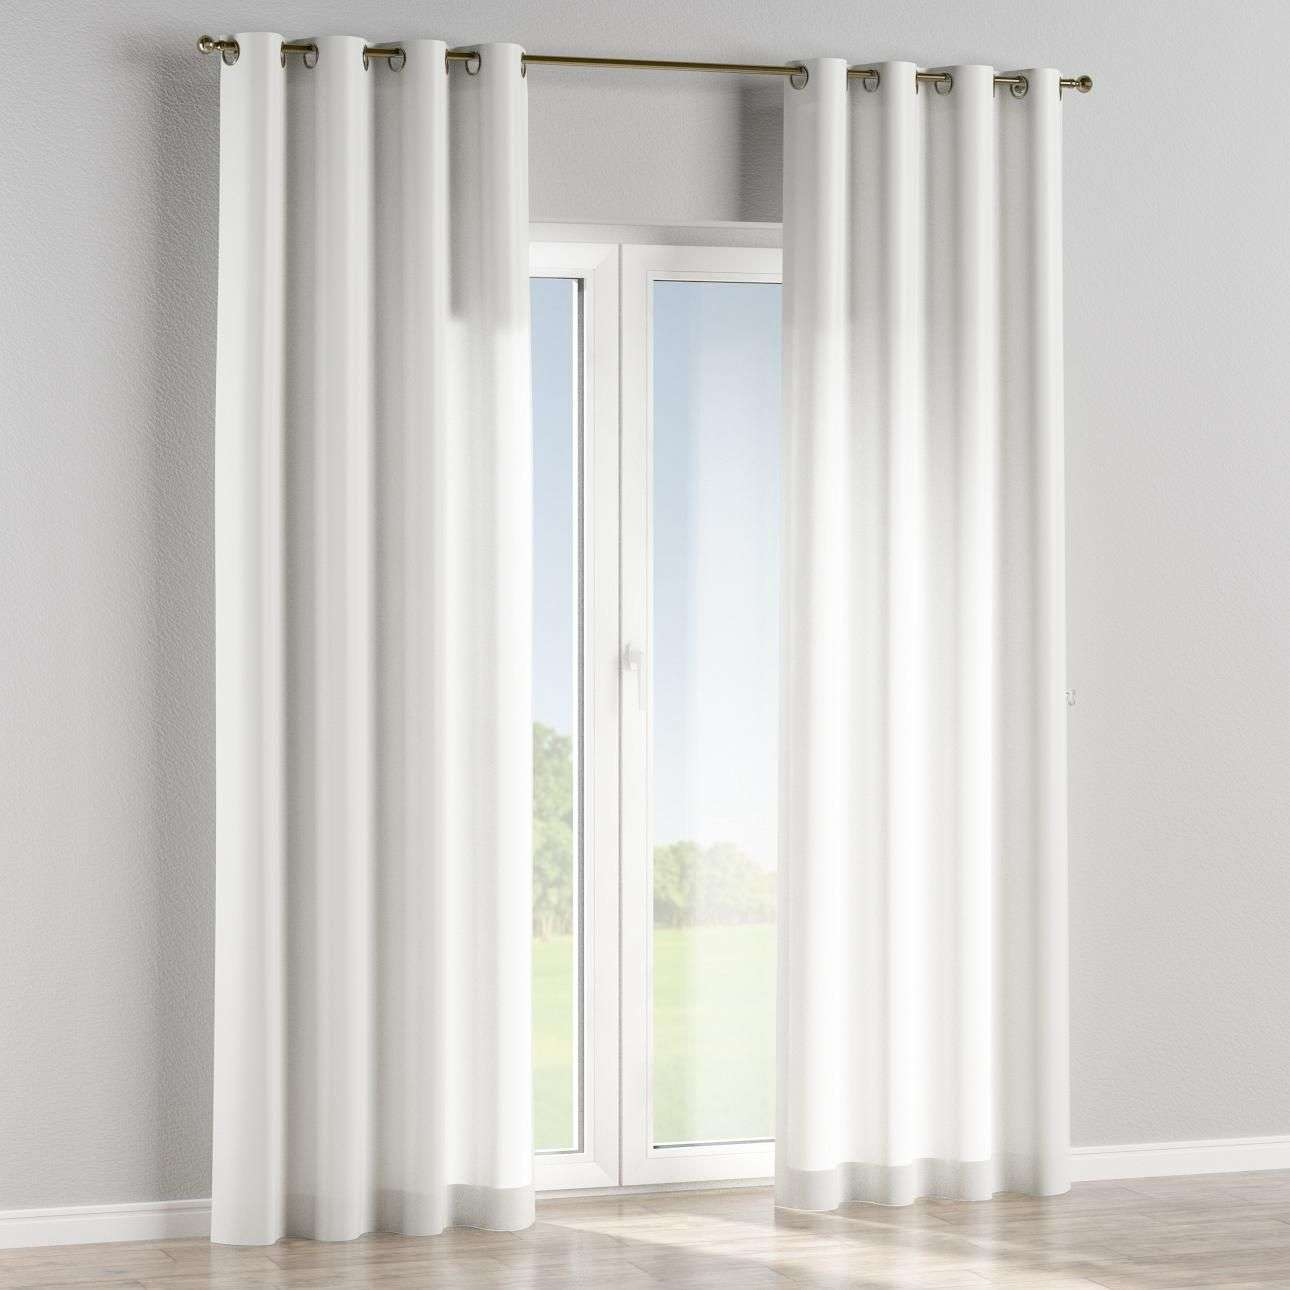 Eyelet lined curtains in collection Mirella, fabric: 140-40